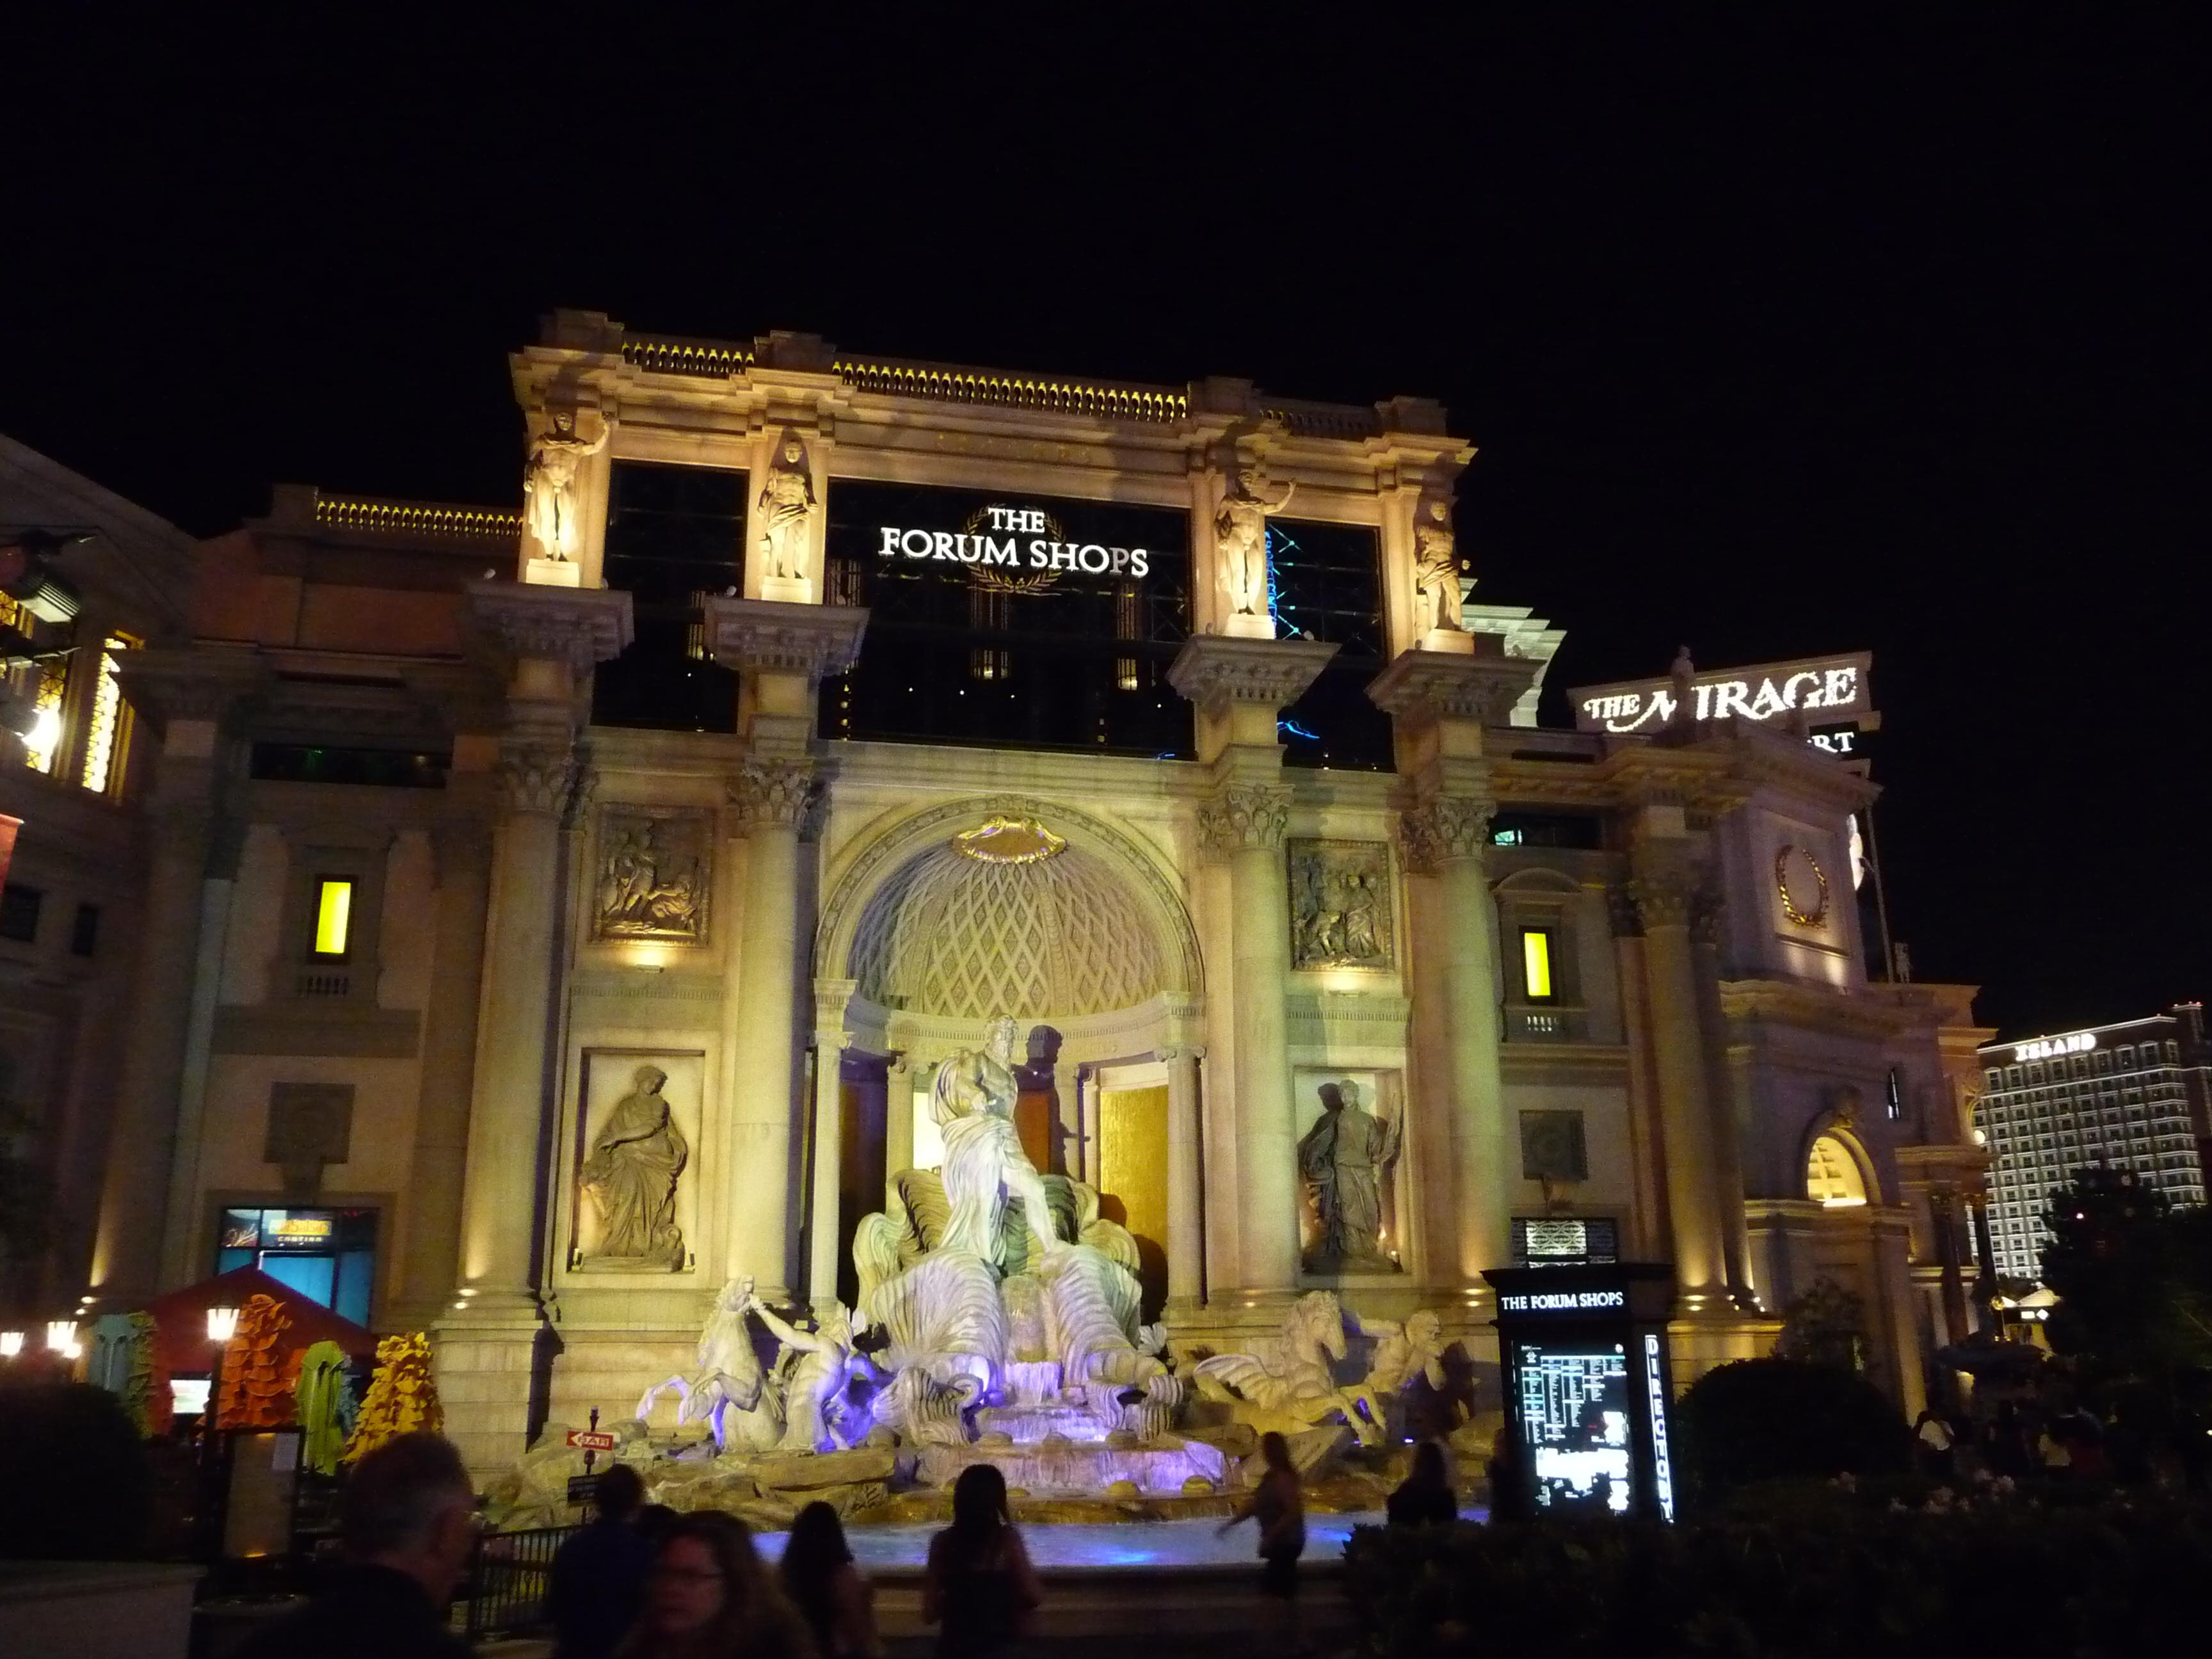 7 10 the forum shops mozeypictures Choice Image